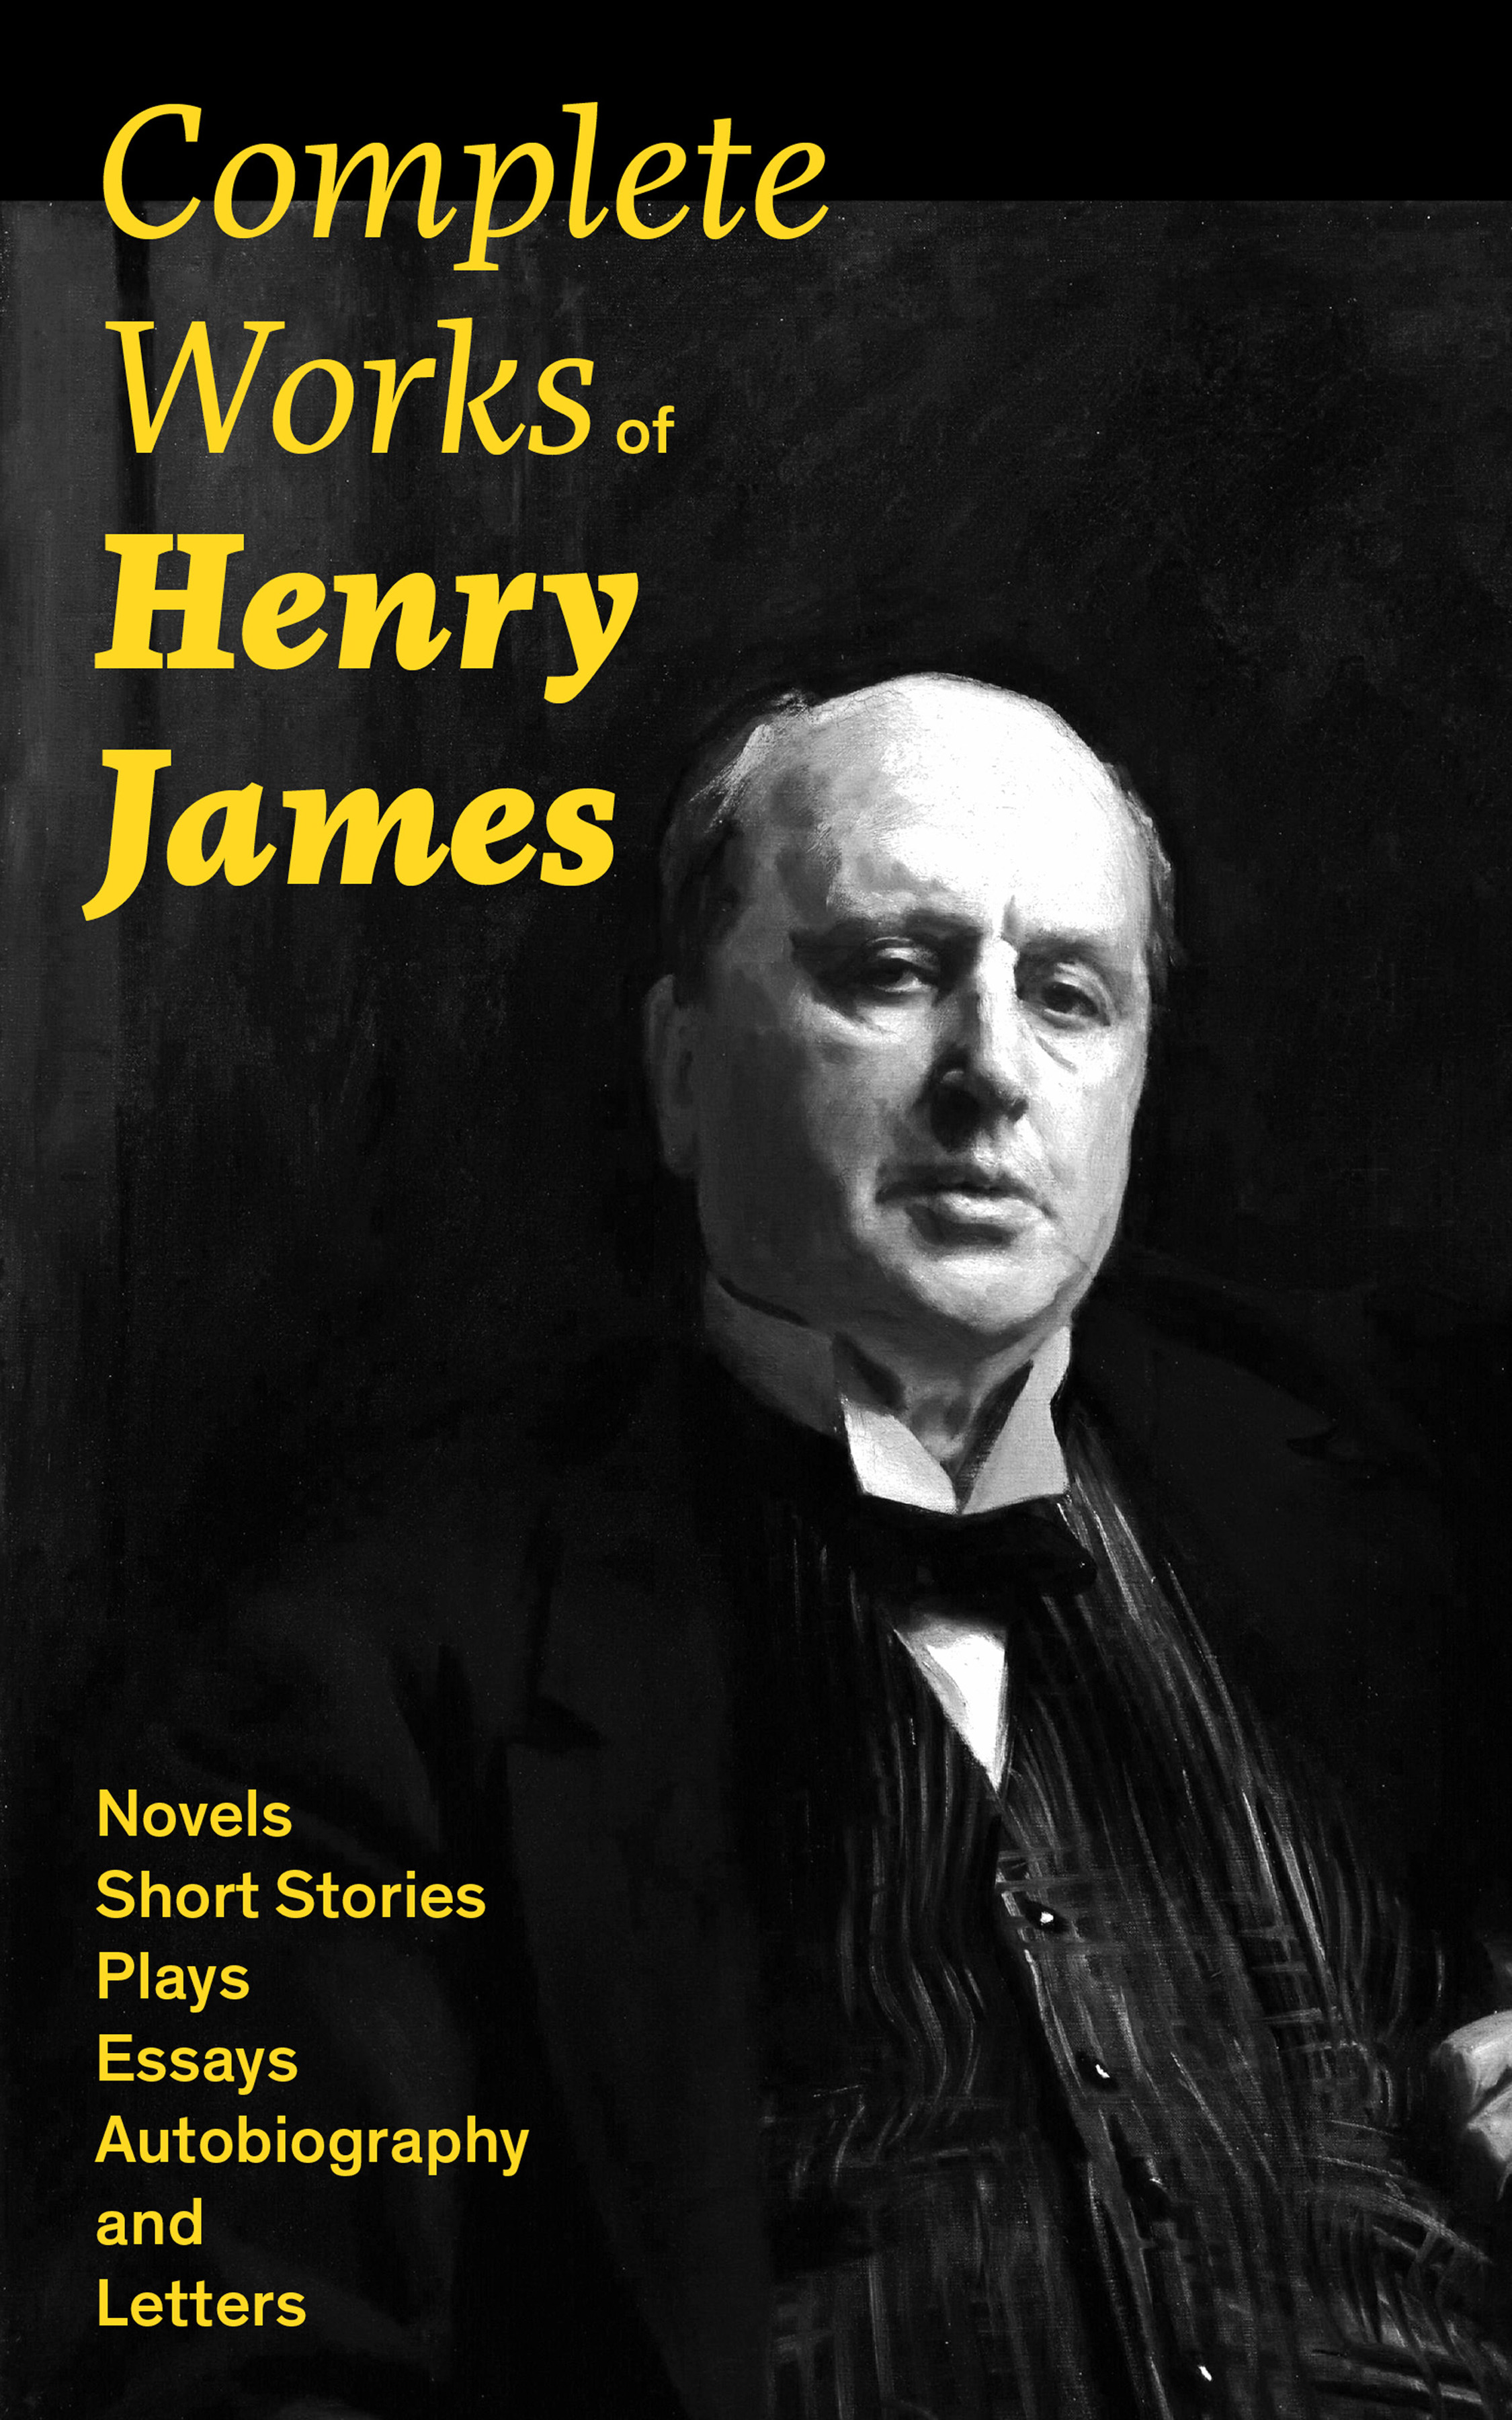 Henry Foss James Complete Works of Henry James: Novels, Short Stories, Plays, Essays, Autobiography and Letters: The Portrait of a Lady, The Wings of the Dove, The American, The Bostonians, The Ambassadors, What Maisie Knew, Washington Square, Daisy Miller… henry foss james the ambassadors the unabridged edition